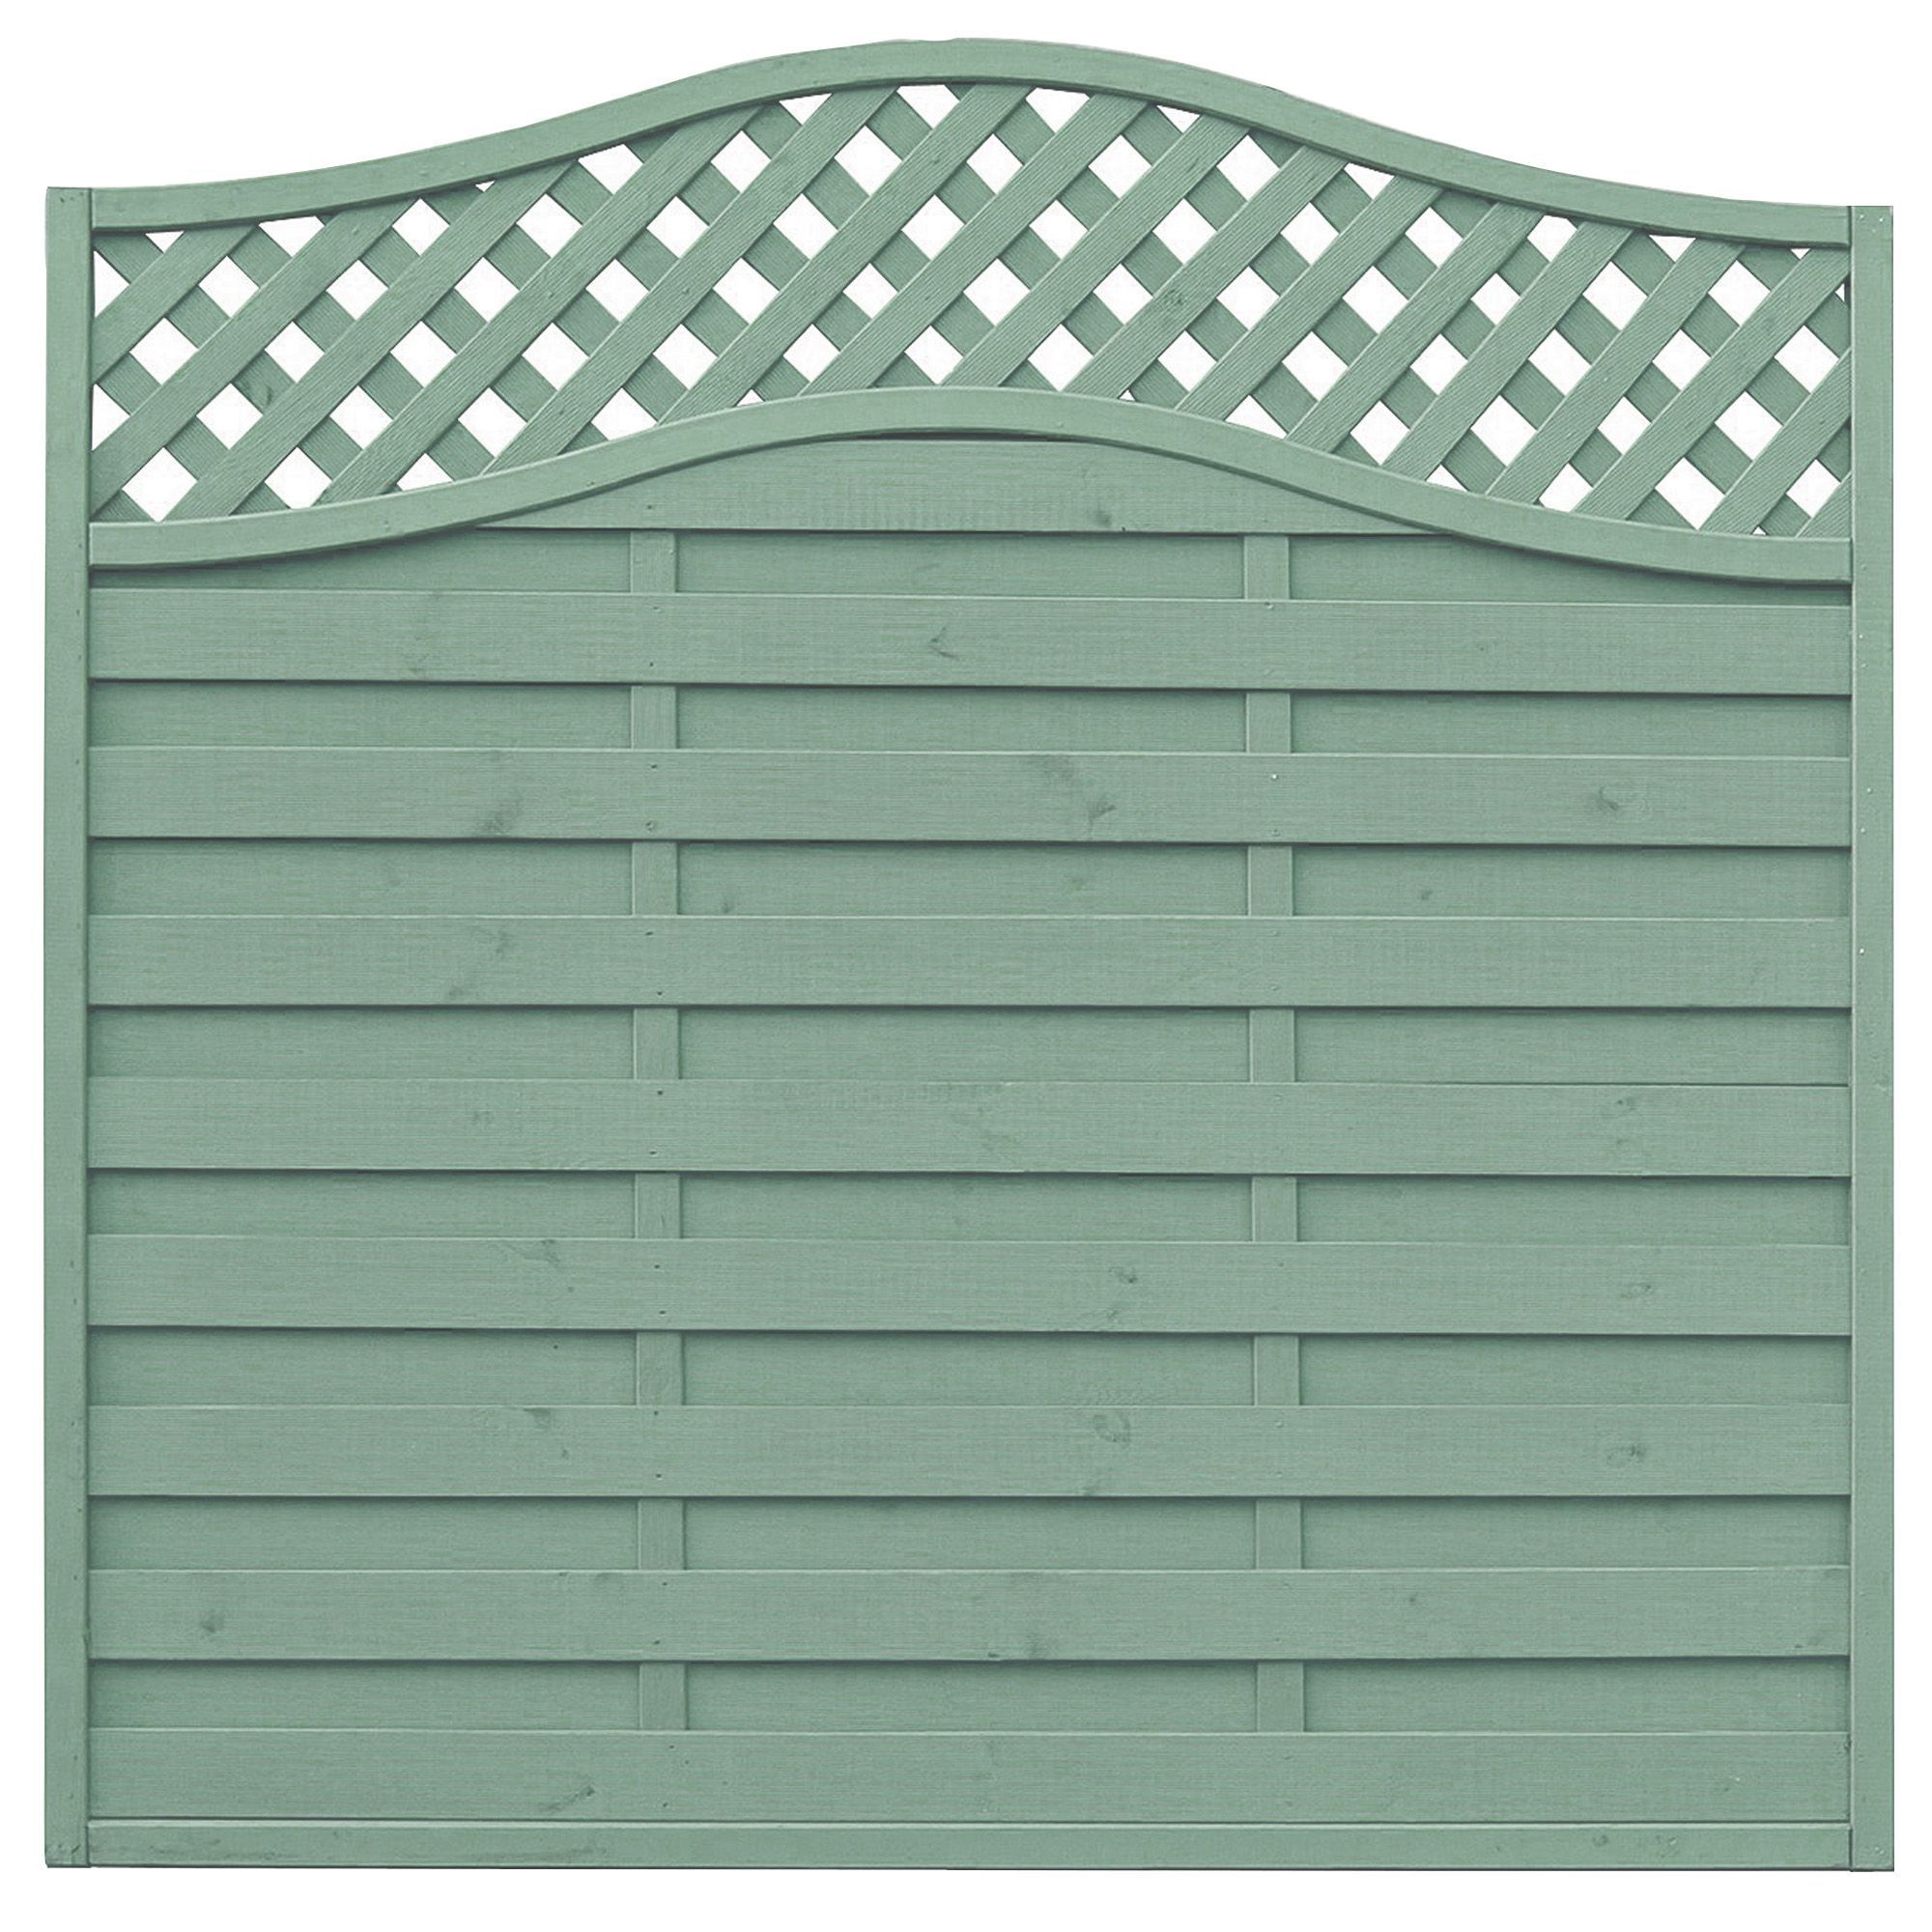 Grange Woodbury Lattice Top Fence Panel W 1 8 M H 1 8 M